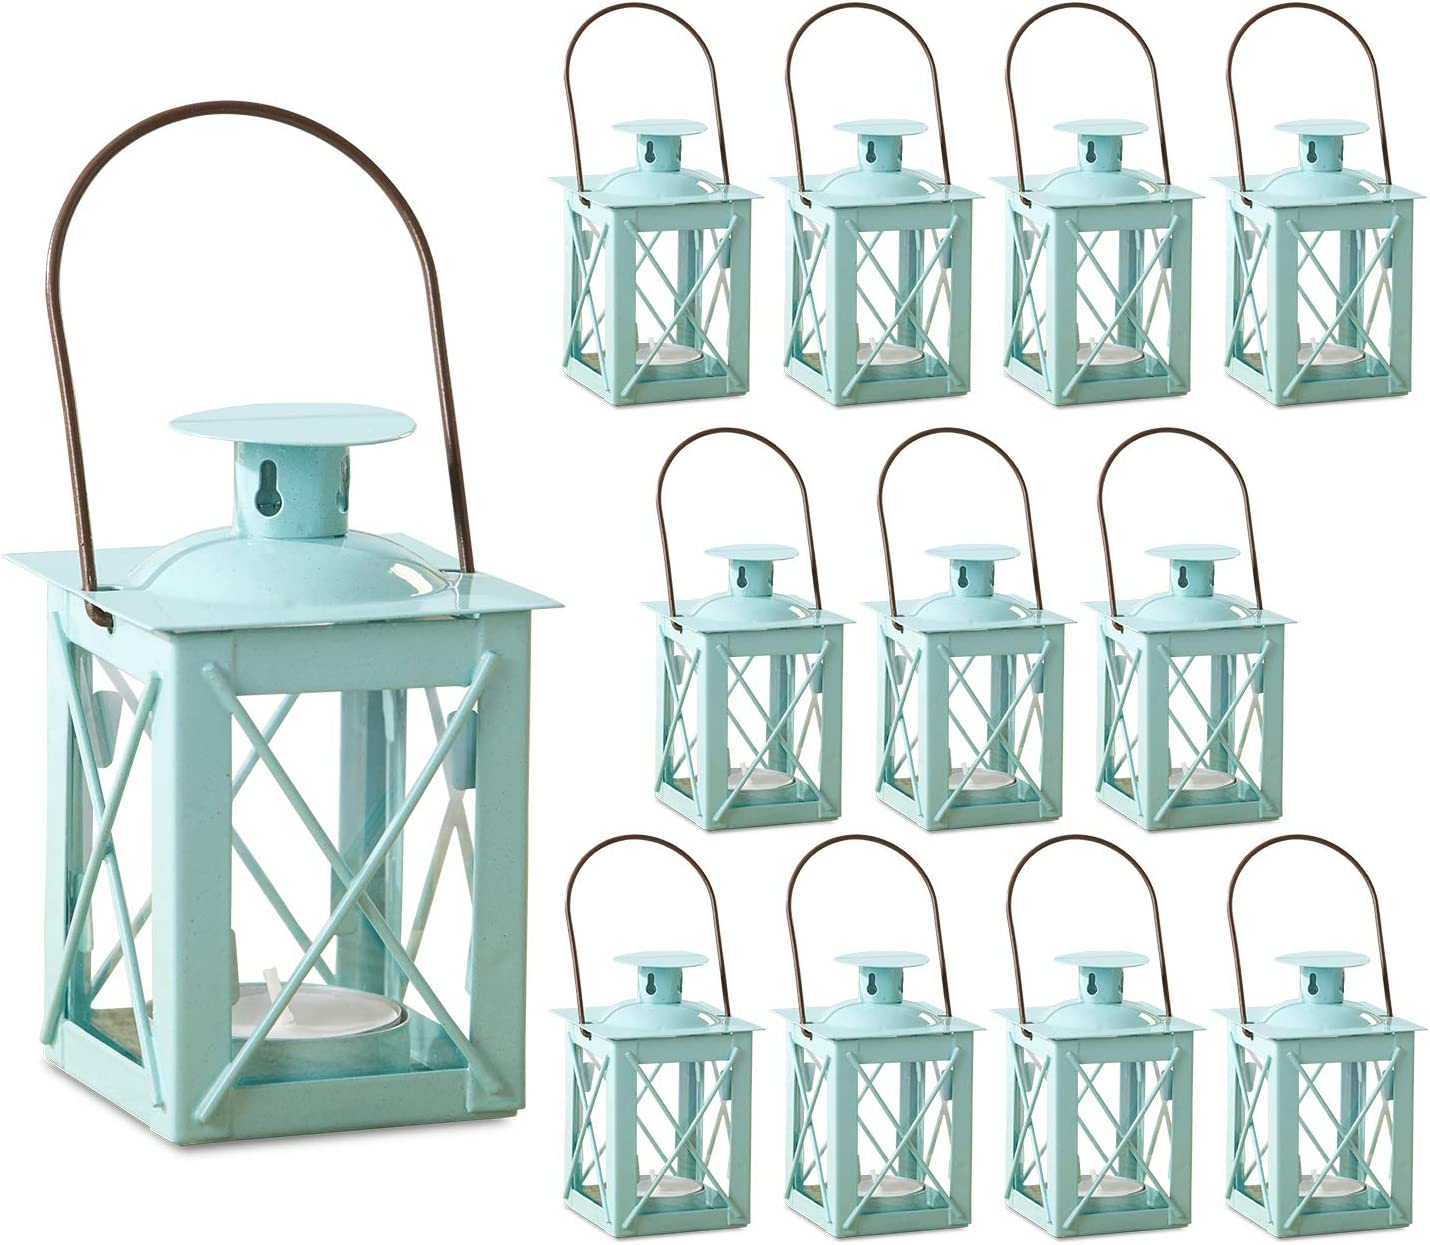 Kate Aspen Decorative Lanterns - Set of 12 - Luminous Metal Lantern Tealight Candle Holders for Wedding, Home Decor and Party - 4.5